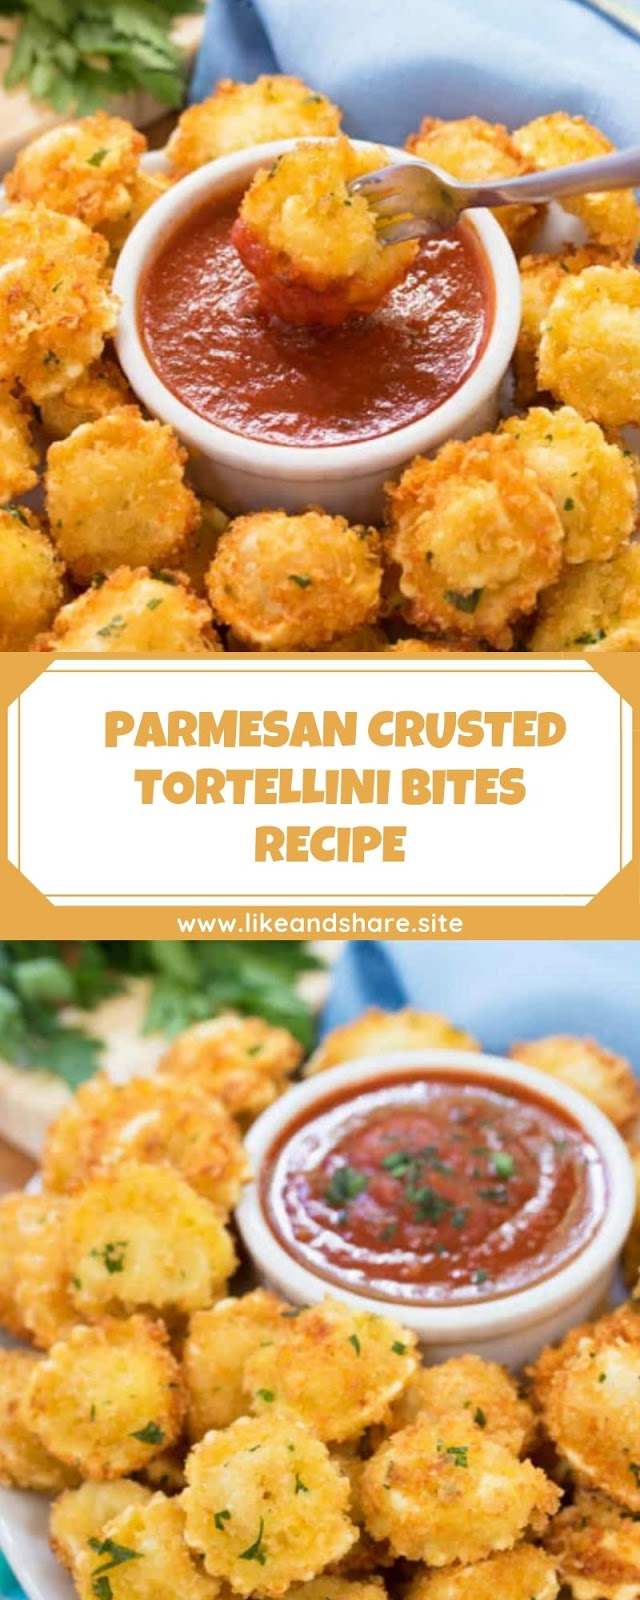 PARMESAN CRUSTED TORTELLINI BITES RECIPE